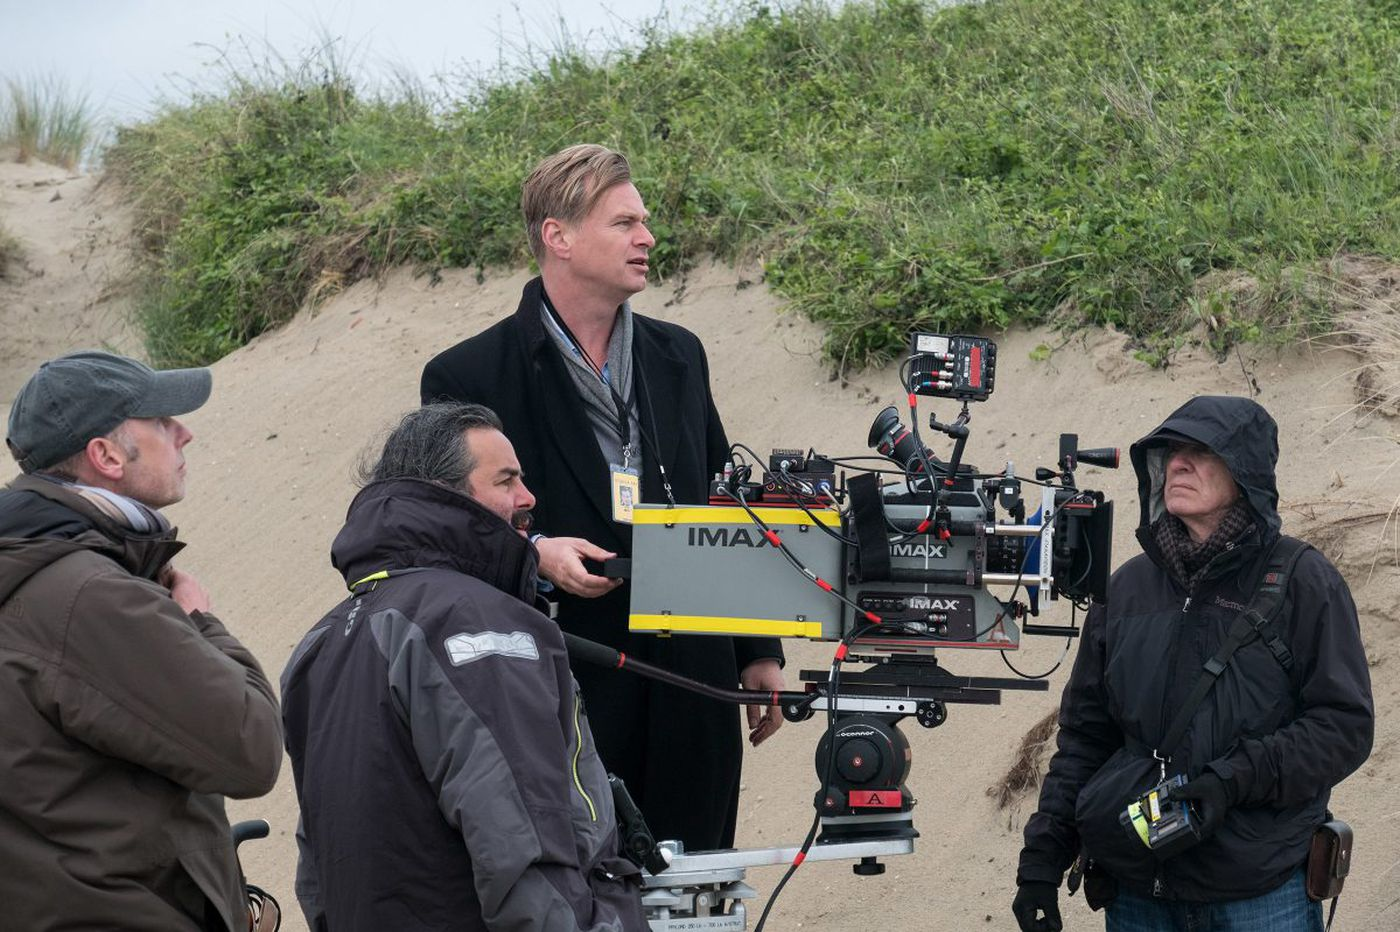 Christopher Nolan wants you to see 'Dunkirk' in 70mm